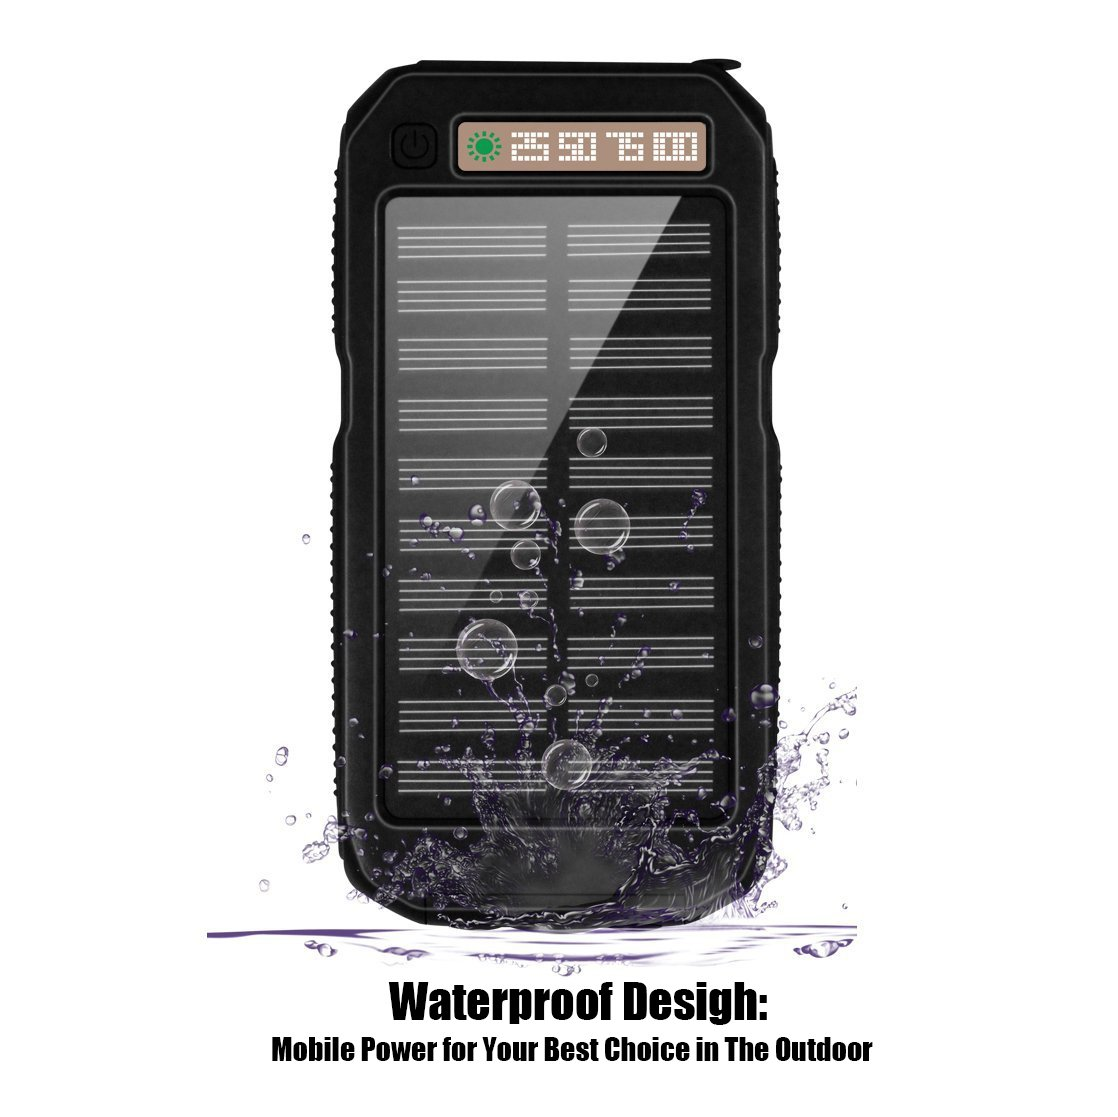 Xnuoyo Power Bank 10000mAh Waterproof Solar Charger with Dual USB Ports External Portable Charger Battery Pack for iPhone, iPad, Samsung, Nexus and Other Smartphones by Xnuoyo (Image #6)